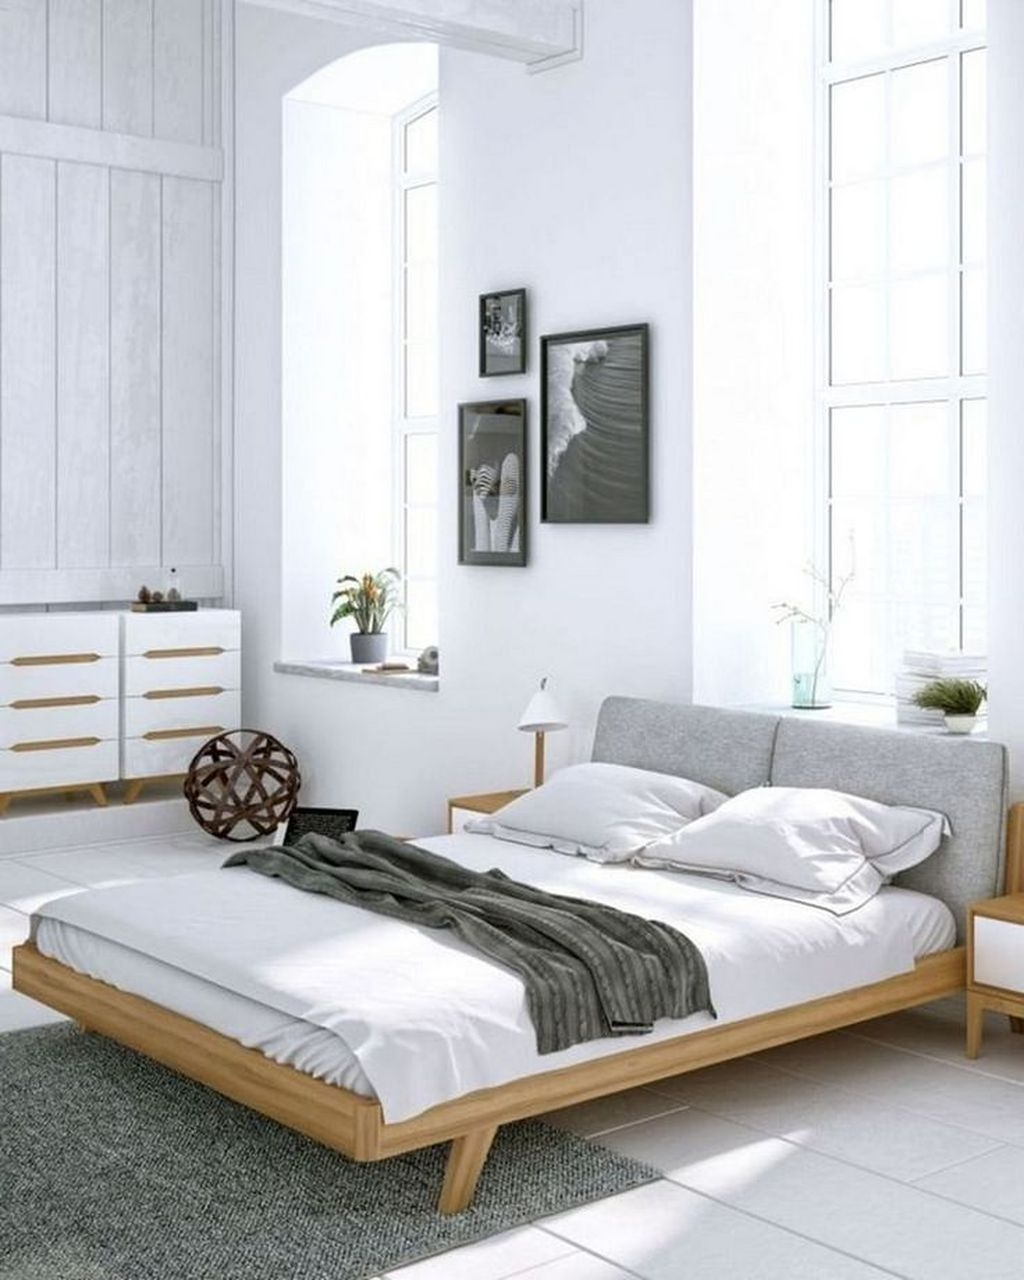 Minimalist Scandinavian Bedroom Decor Ideas 19